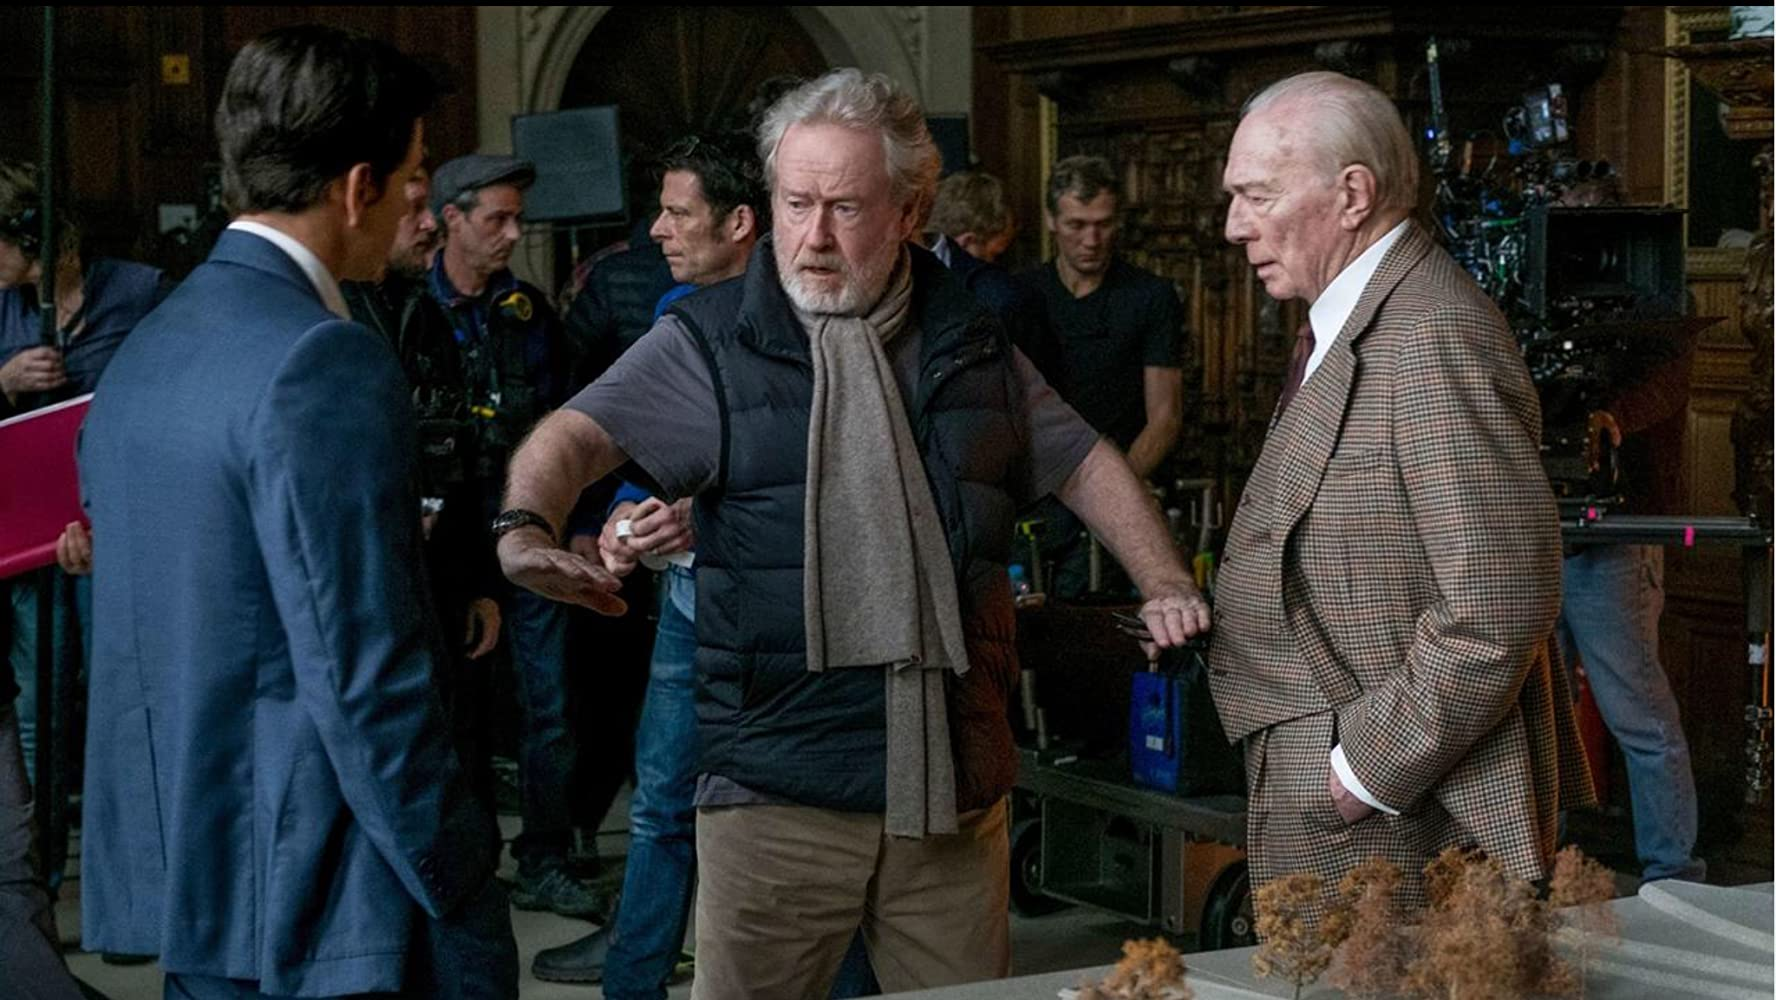 Mark Wahlberg, Ridley Scott, and Christopher Plummer in All the Money in the World (2017)